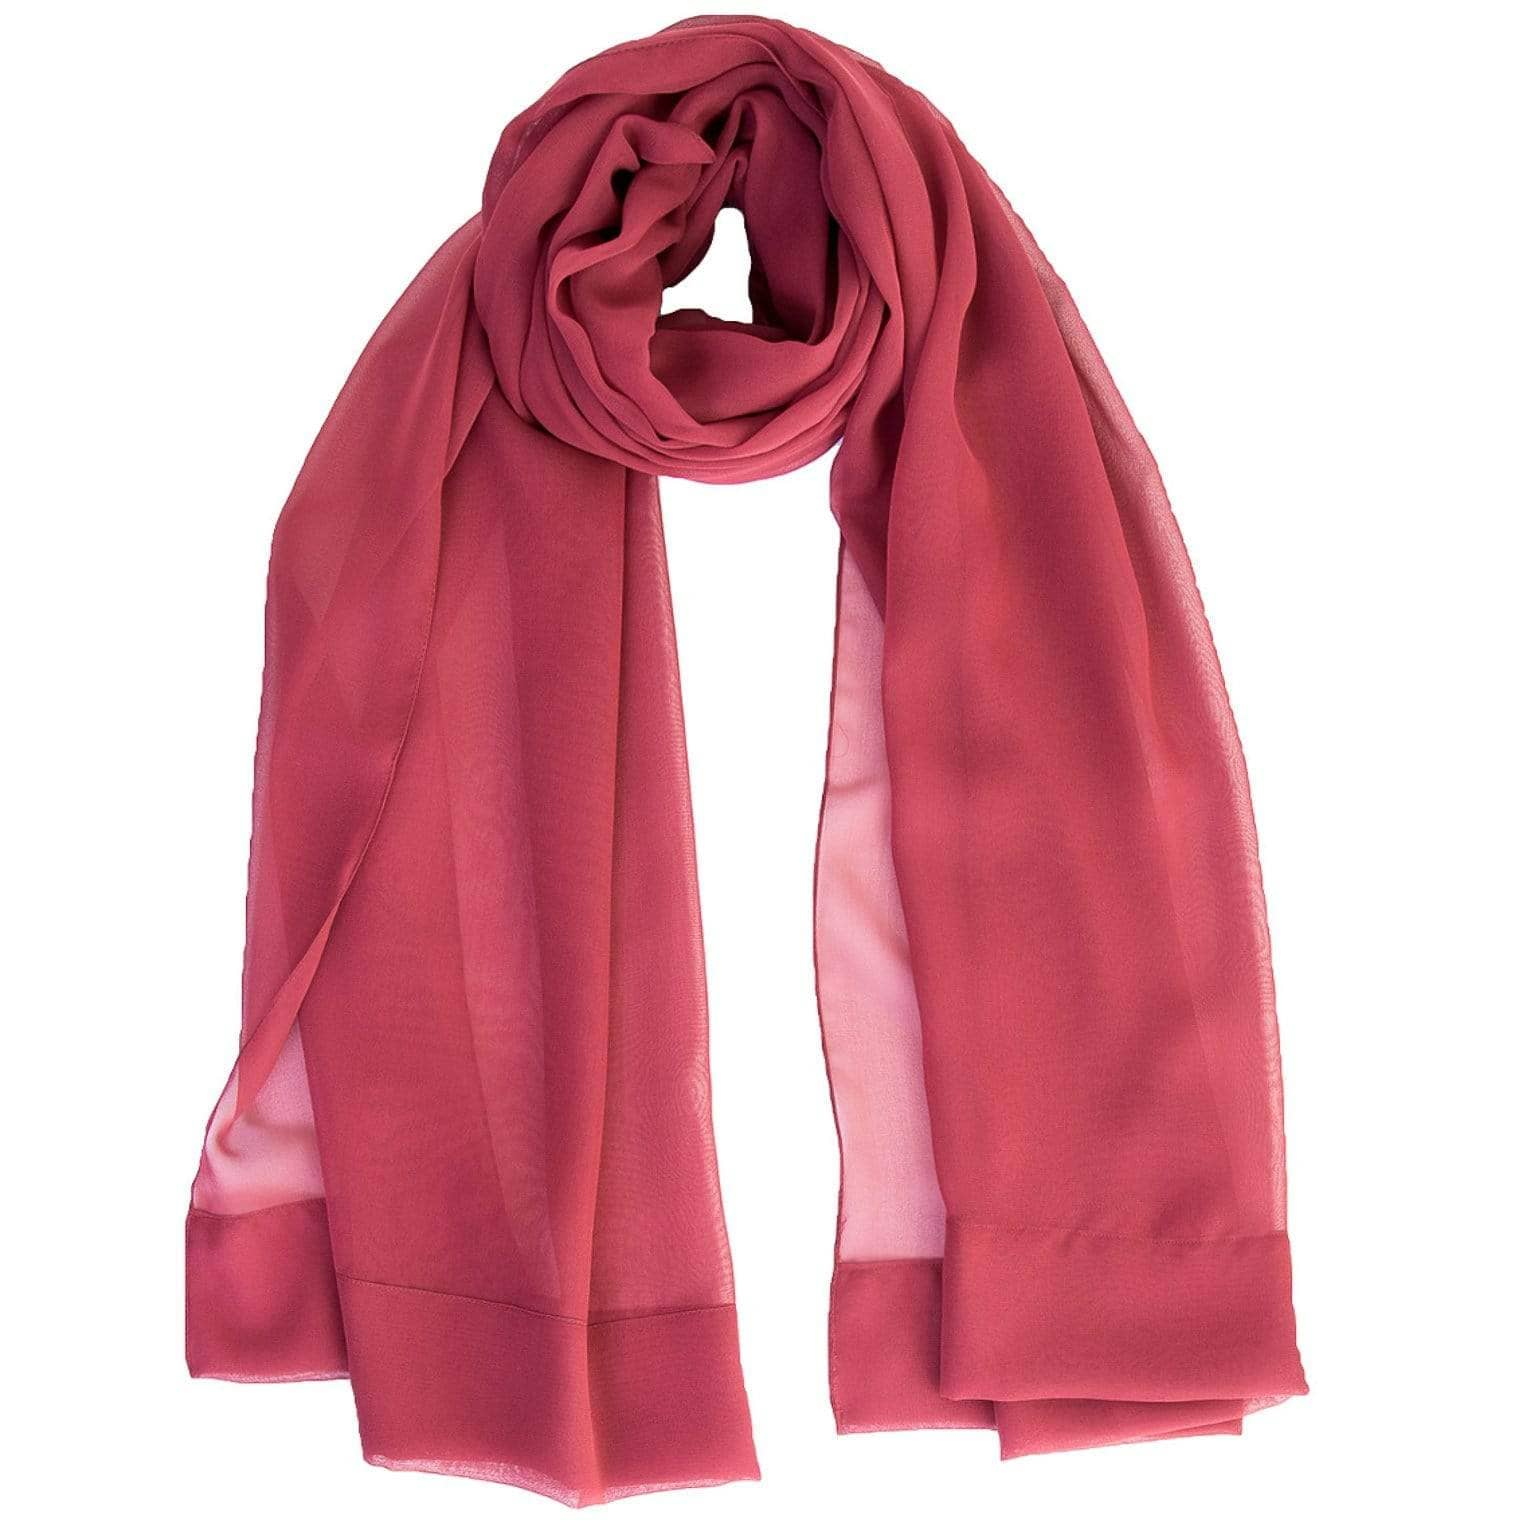 Burgundy Evening Wrap - Italian Sheer Silk Chiffon